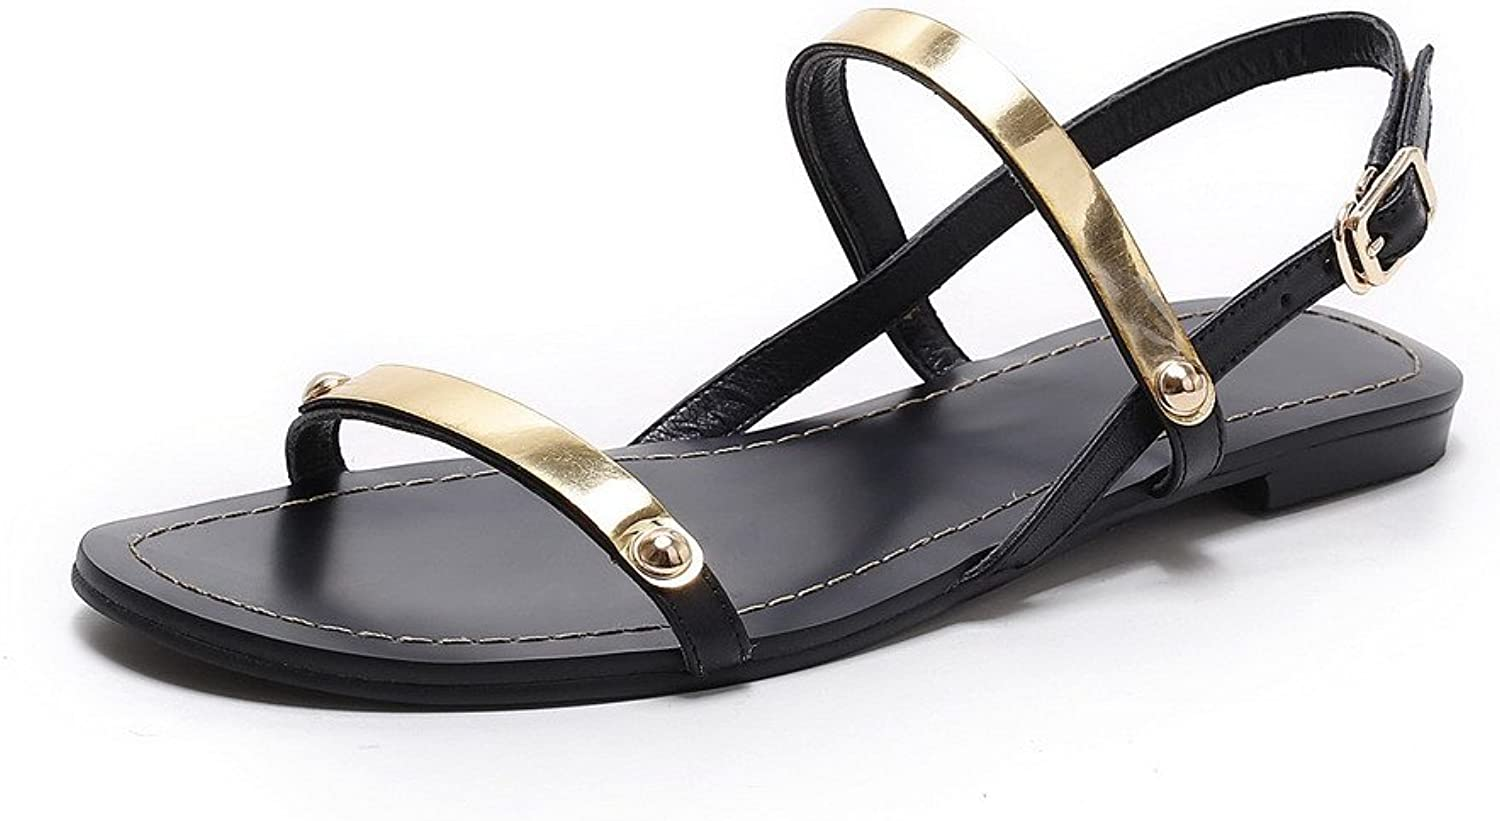 AmoonyFashion Women's Open-Toe Buckle Cow Leather Solid Low-Heels Sandals